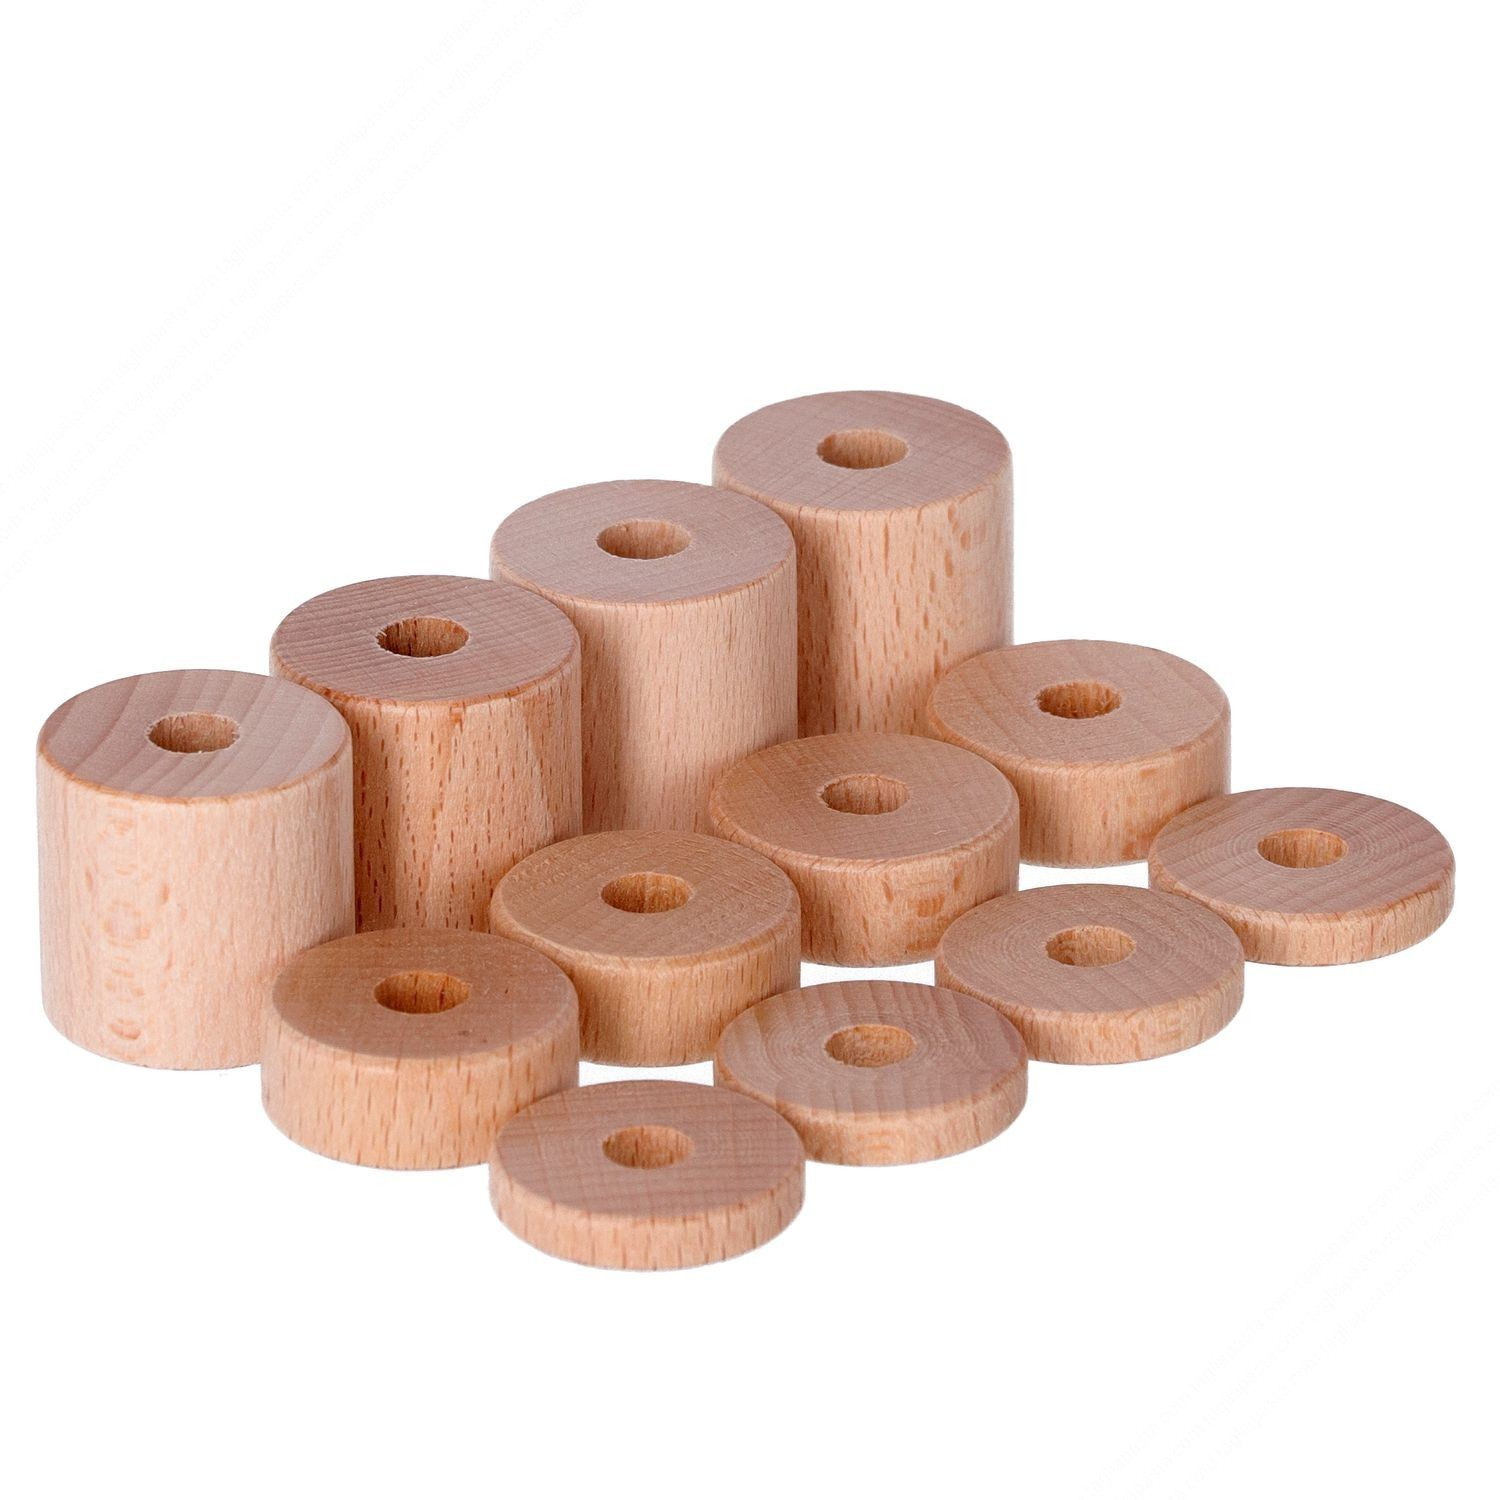 Wooden separators kit for Pasta cutter rolling pins